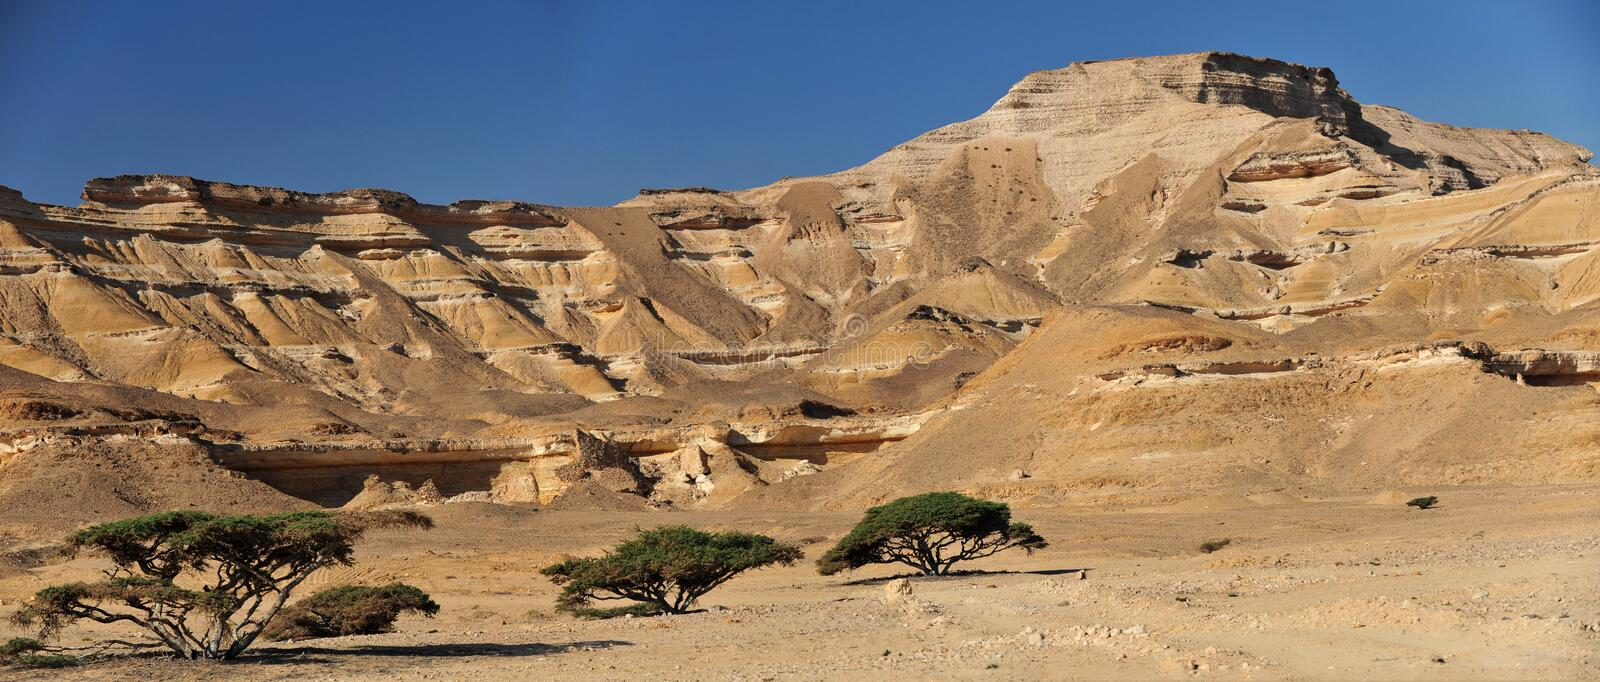 Wadi shuwaymiyah stock photography